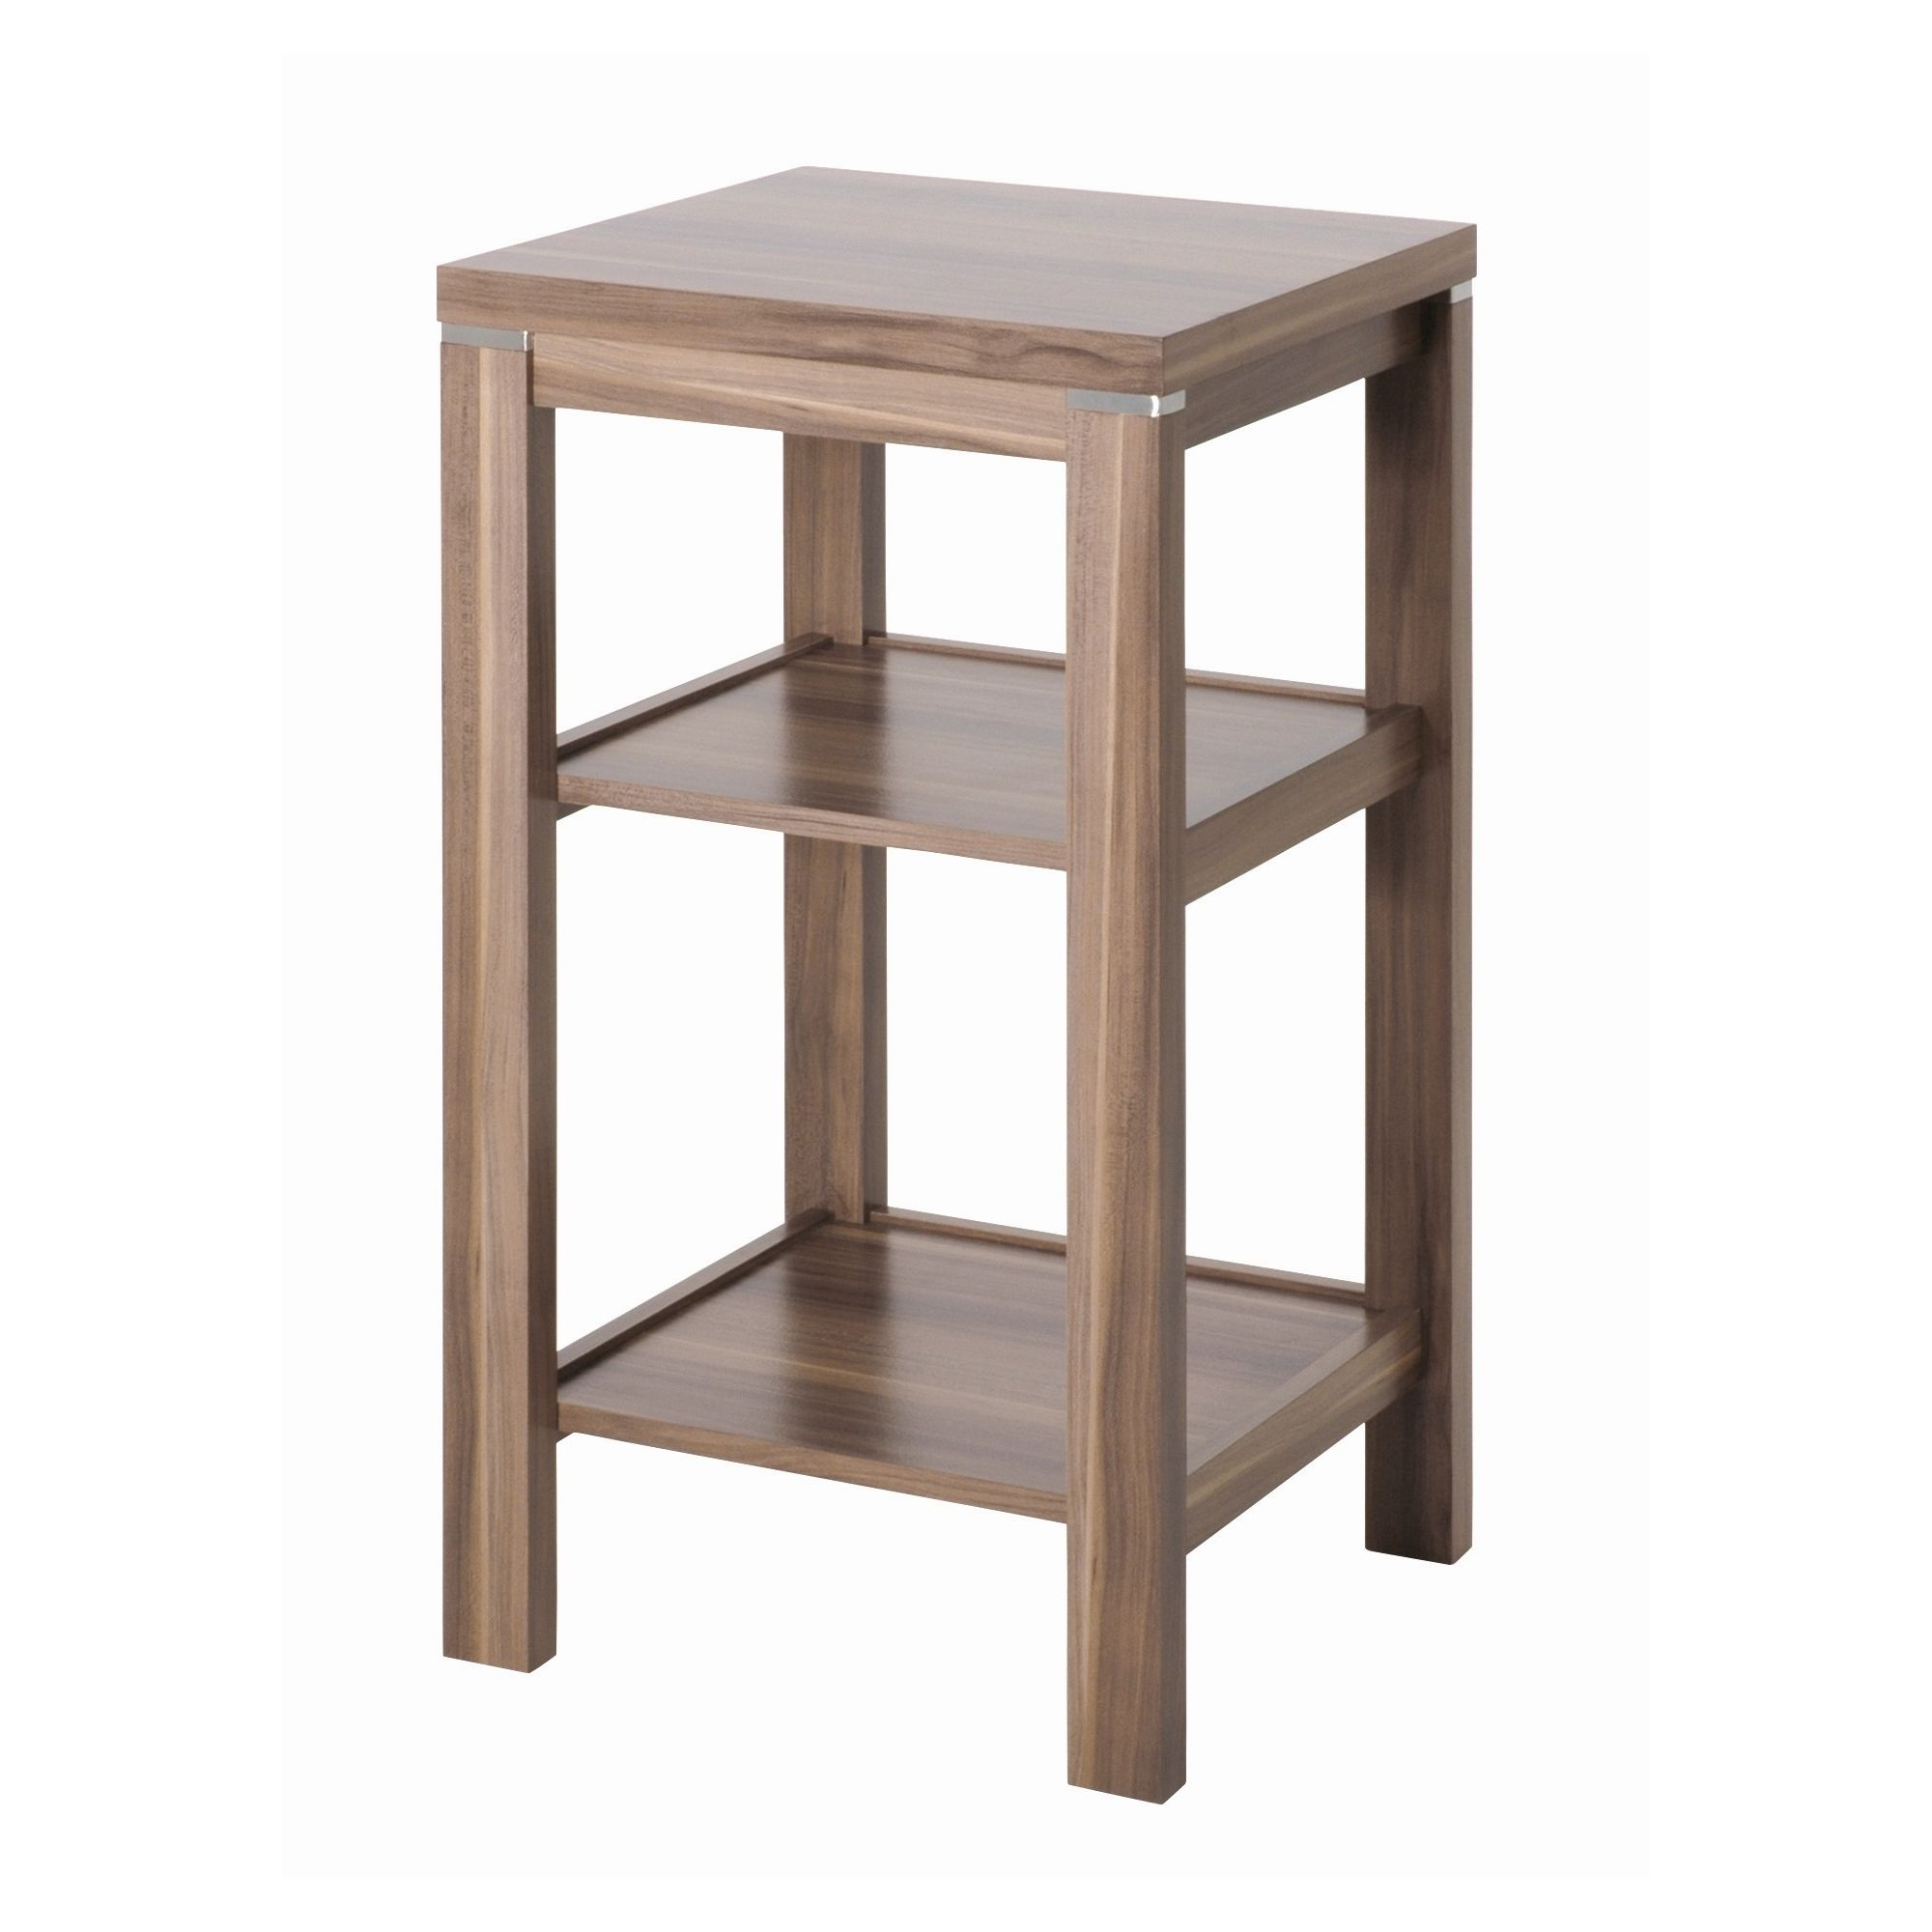 Urbane Designs Samba Nut Console Table in Walnut